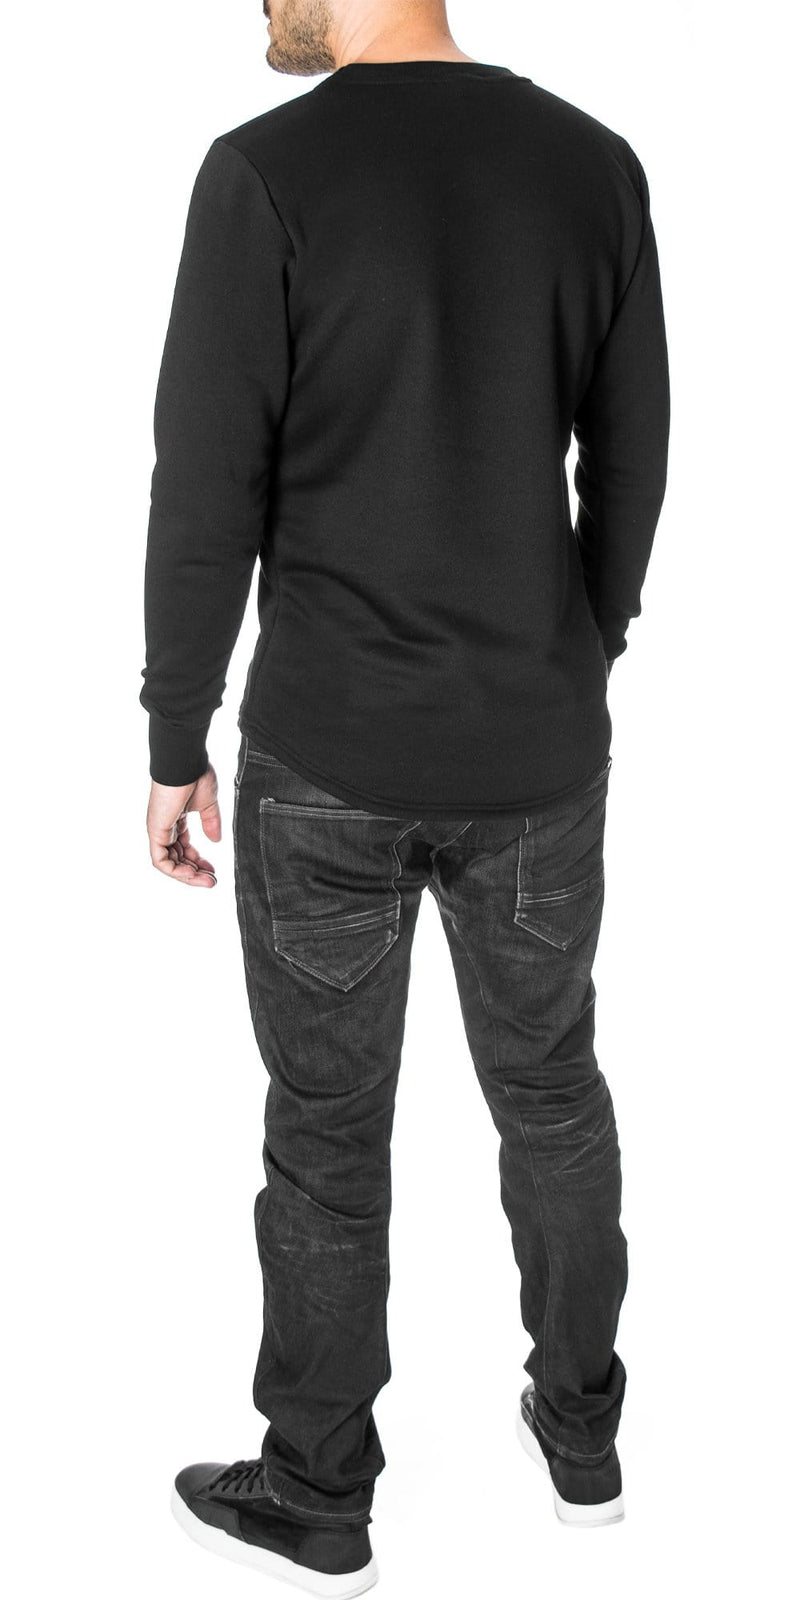 Basic Curved Hem Sweatshirt, Black